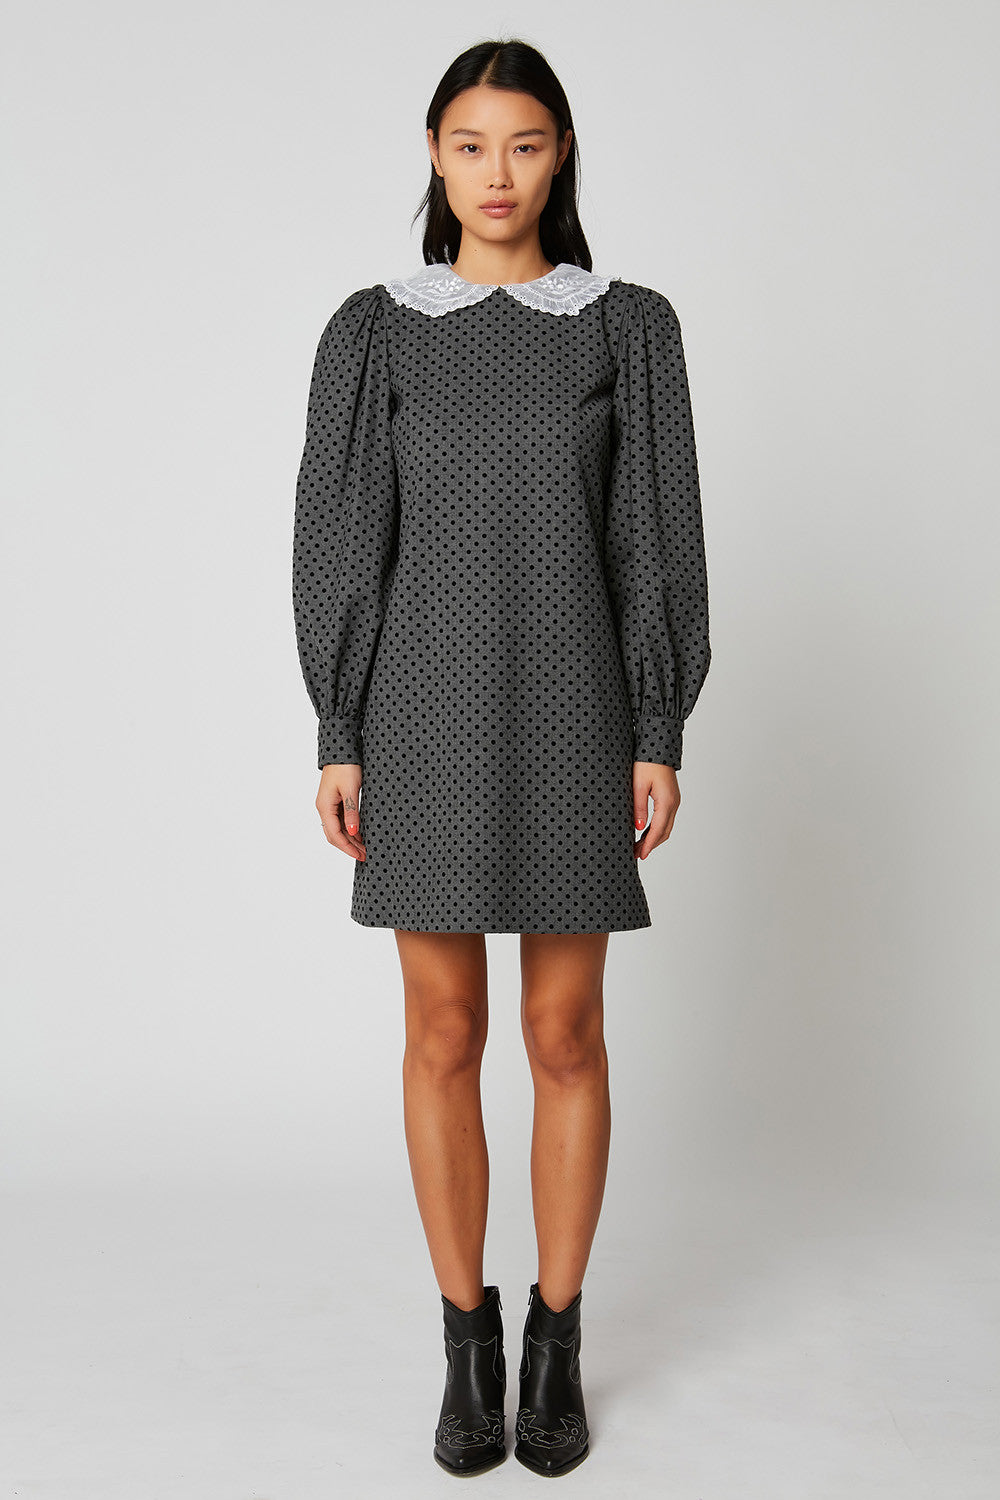 Polka dot shift dress with Swiss embroidery detail